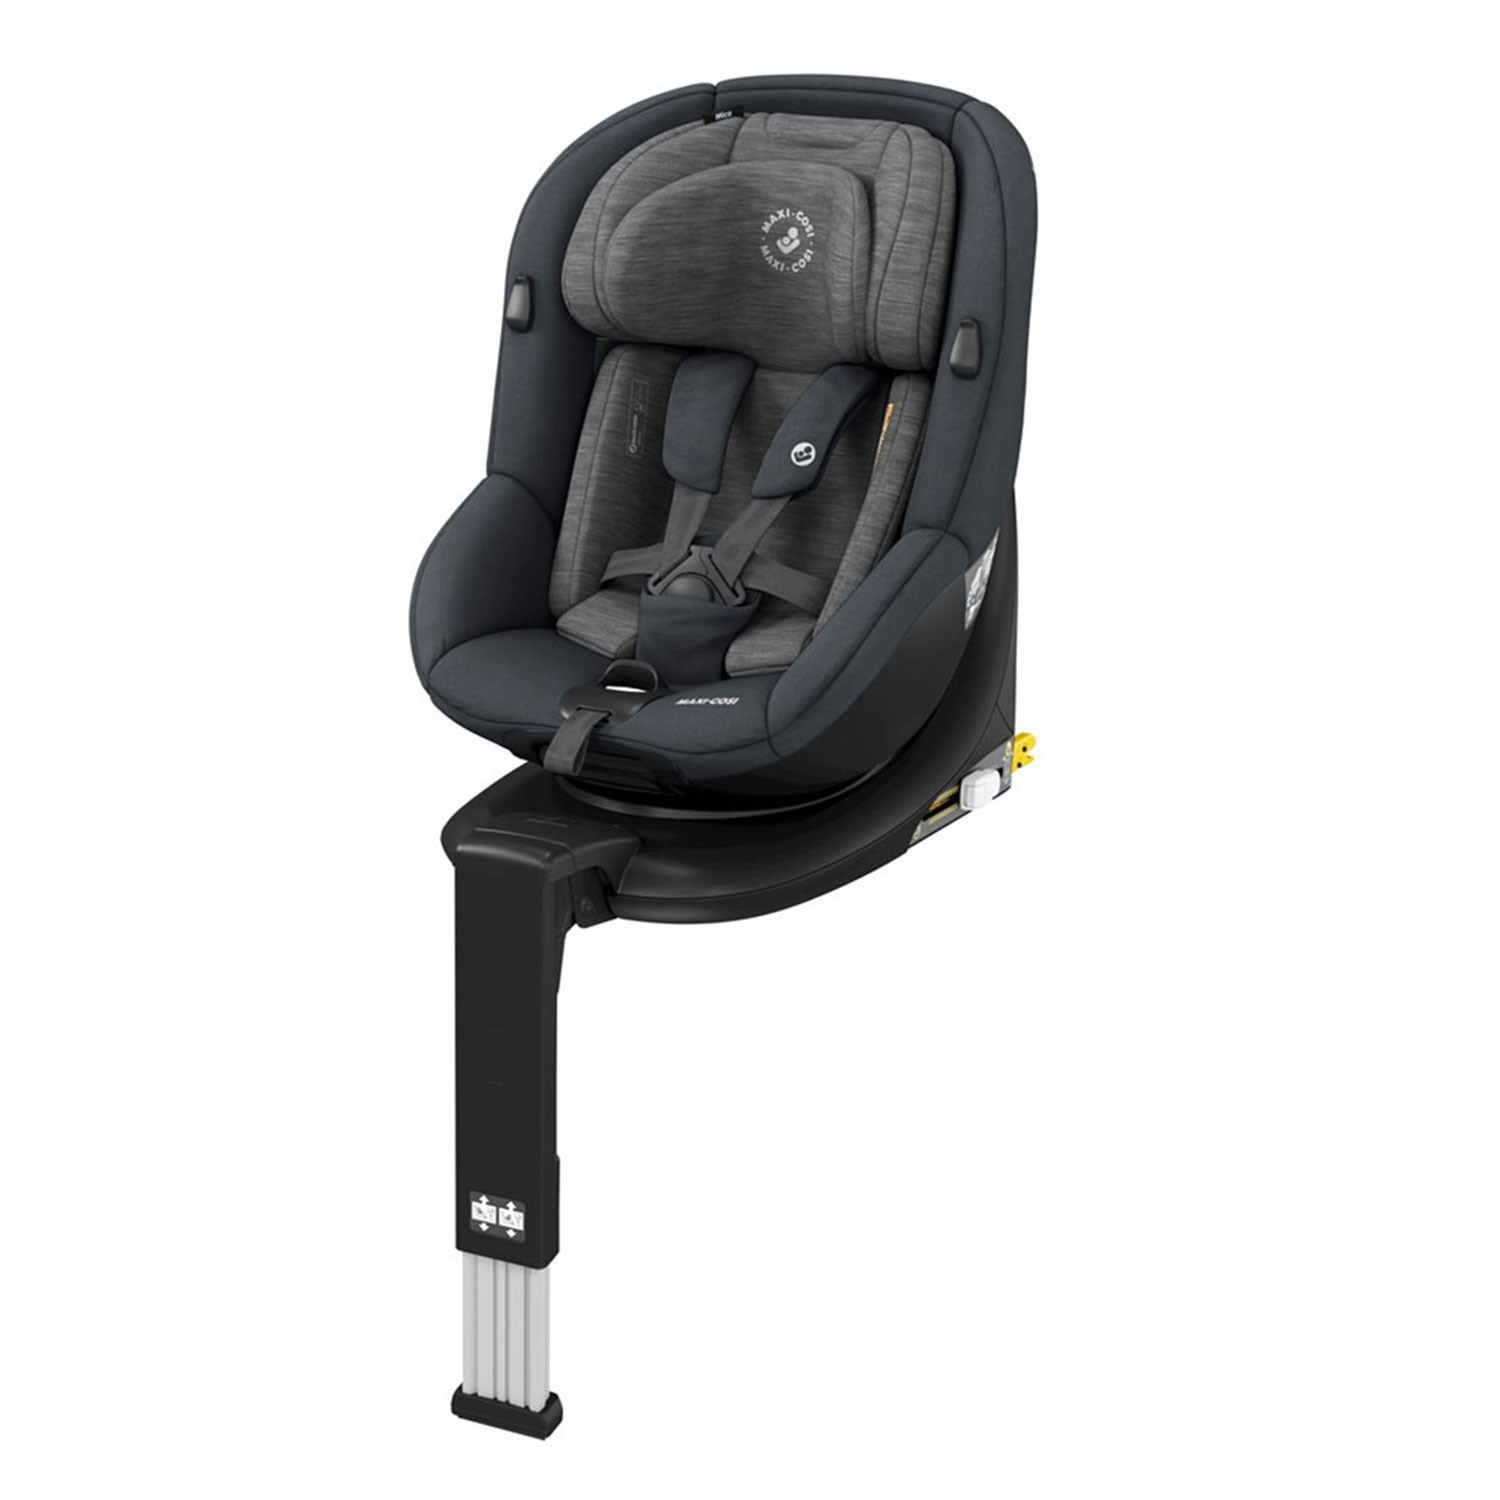 Maxi Cosi Mica Oto Koltuğu 0-18 Kg Authentic Graphite